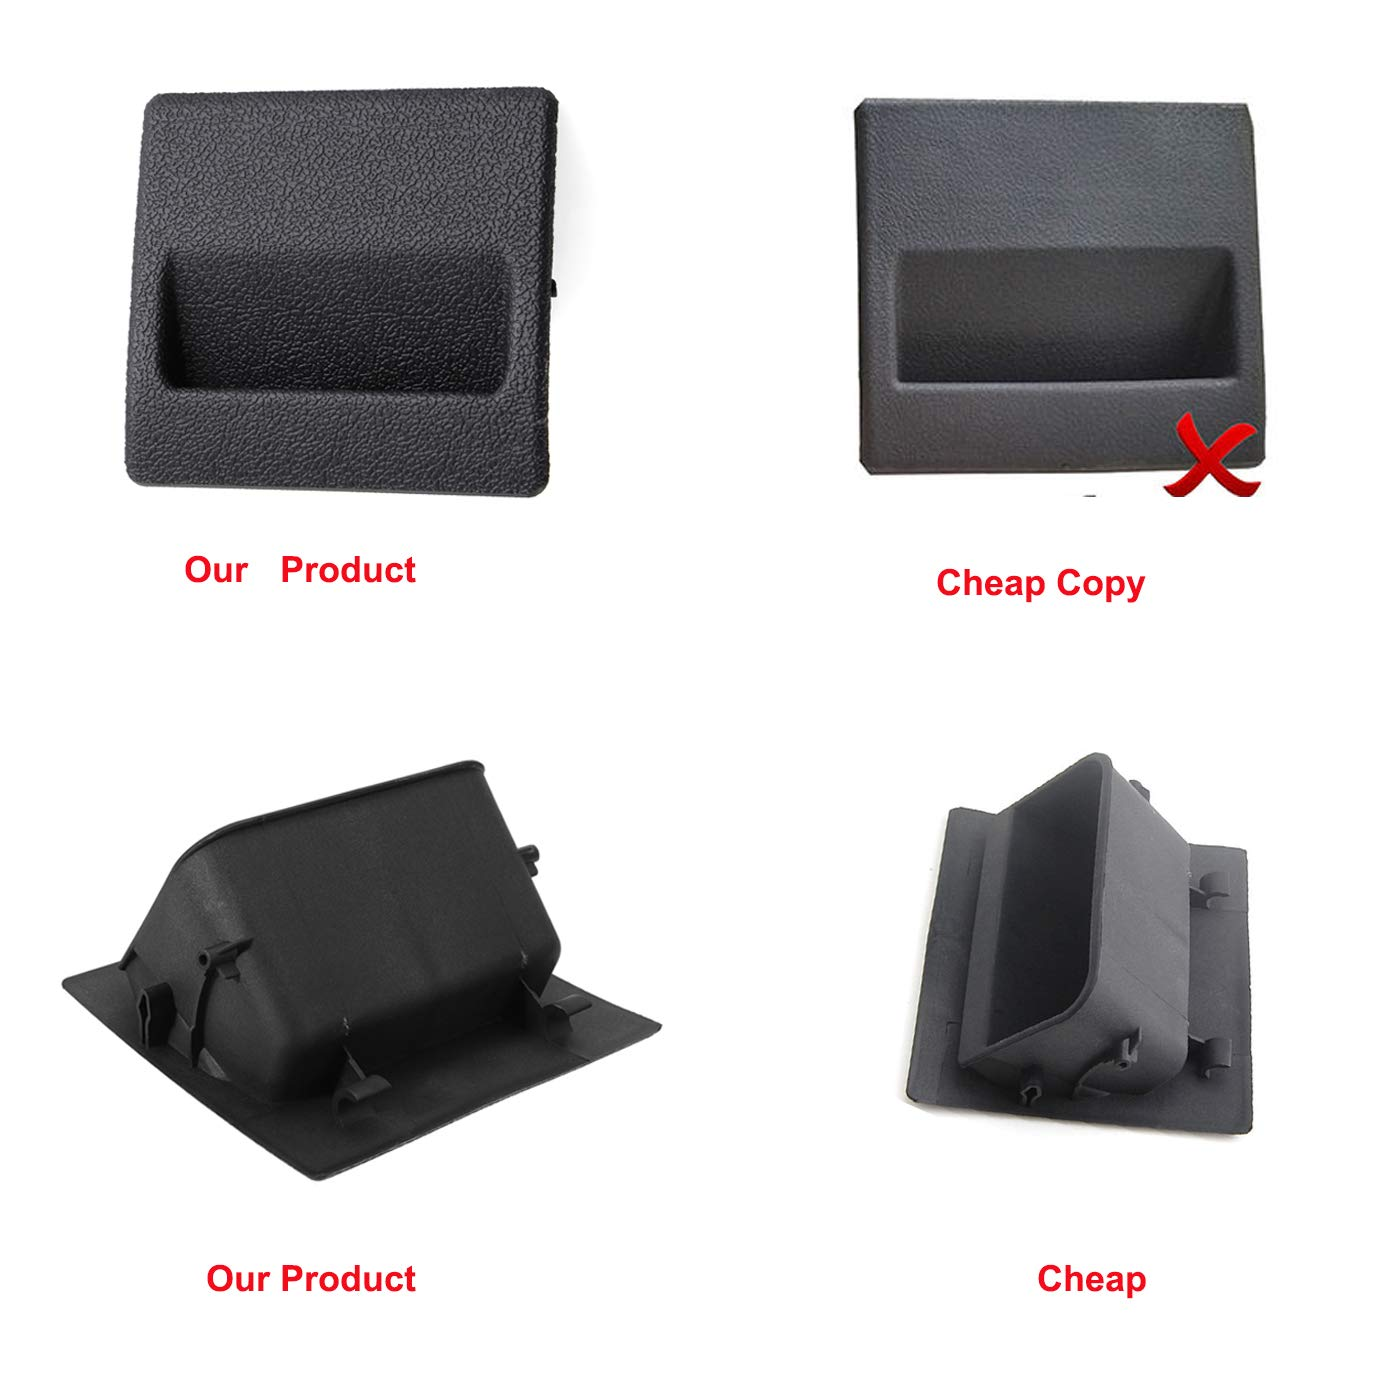 Ketofa Car Fuse Box Coin Holder Inner Storage Tray Container for Subaru XV Crosstrek Forester WRX Impreza Outback Fuse Box Coin Container 4350412406